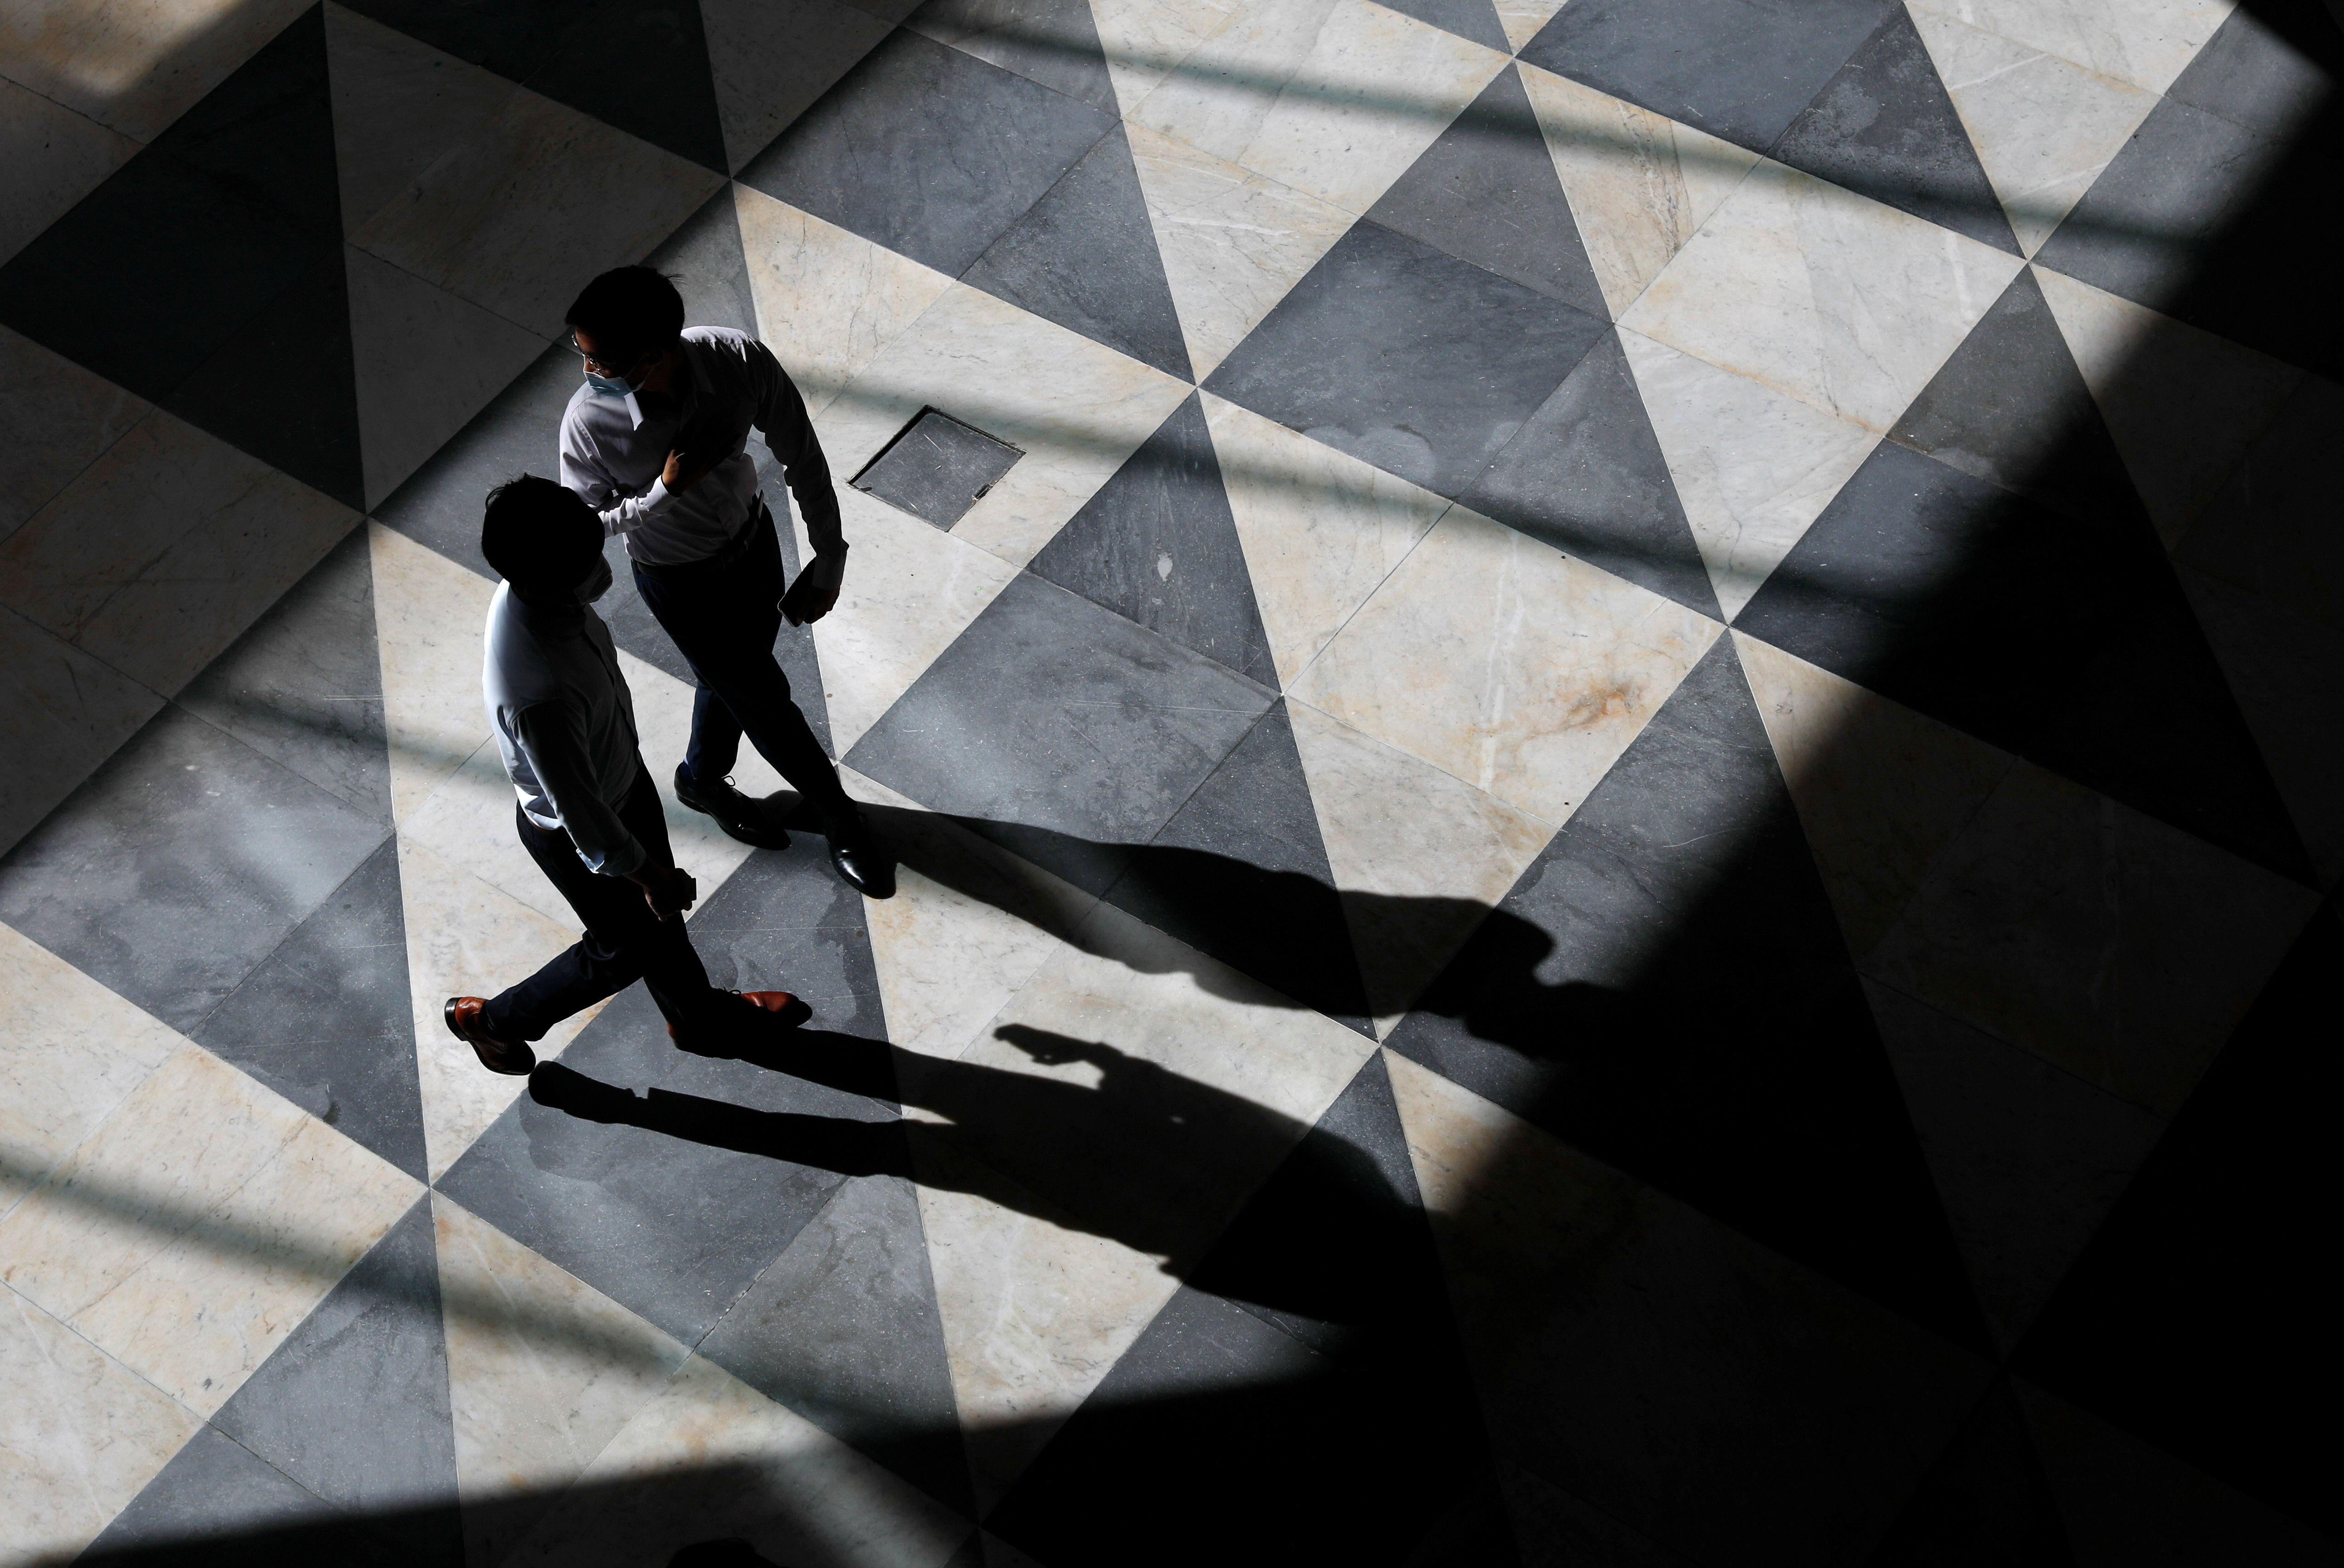 Office workers are seen at a largely empty central business district as Singapore returns to the work-from-home regime due to surging cases in the coronavirus disease (COVID-19) outbreak, in Singapore September 27, 2021. REUTERS/Edgar Su - RC21YP90PJW6